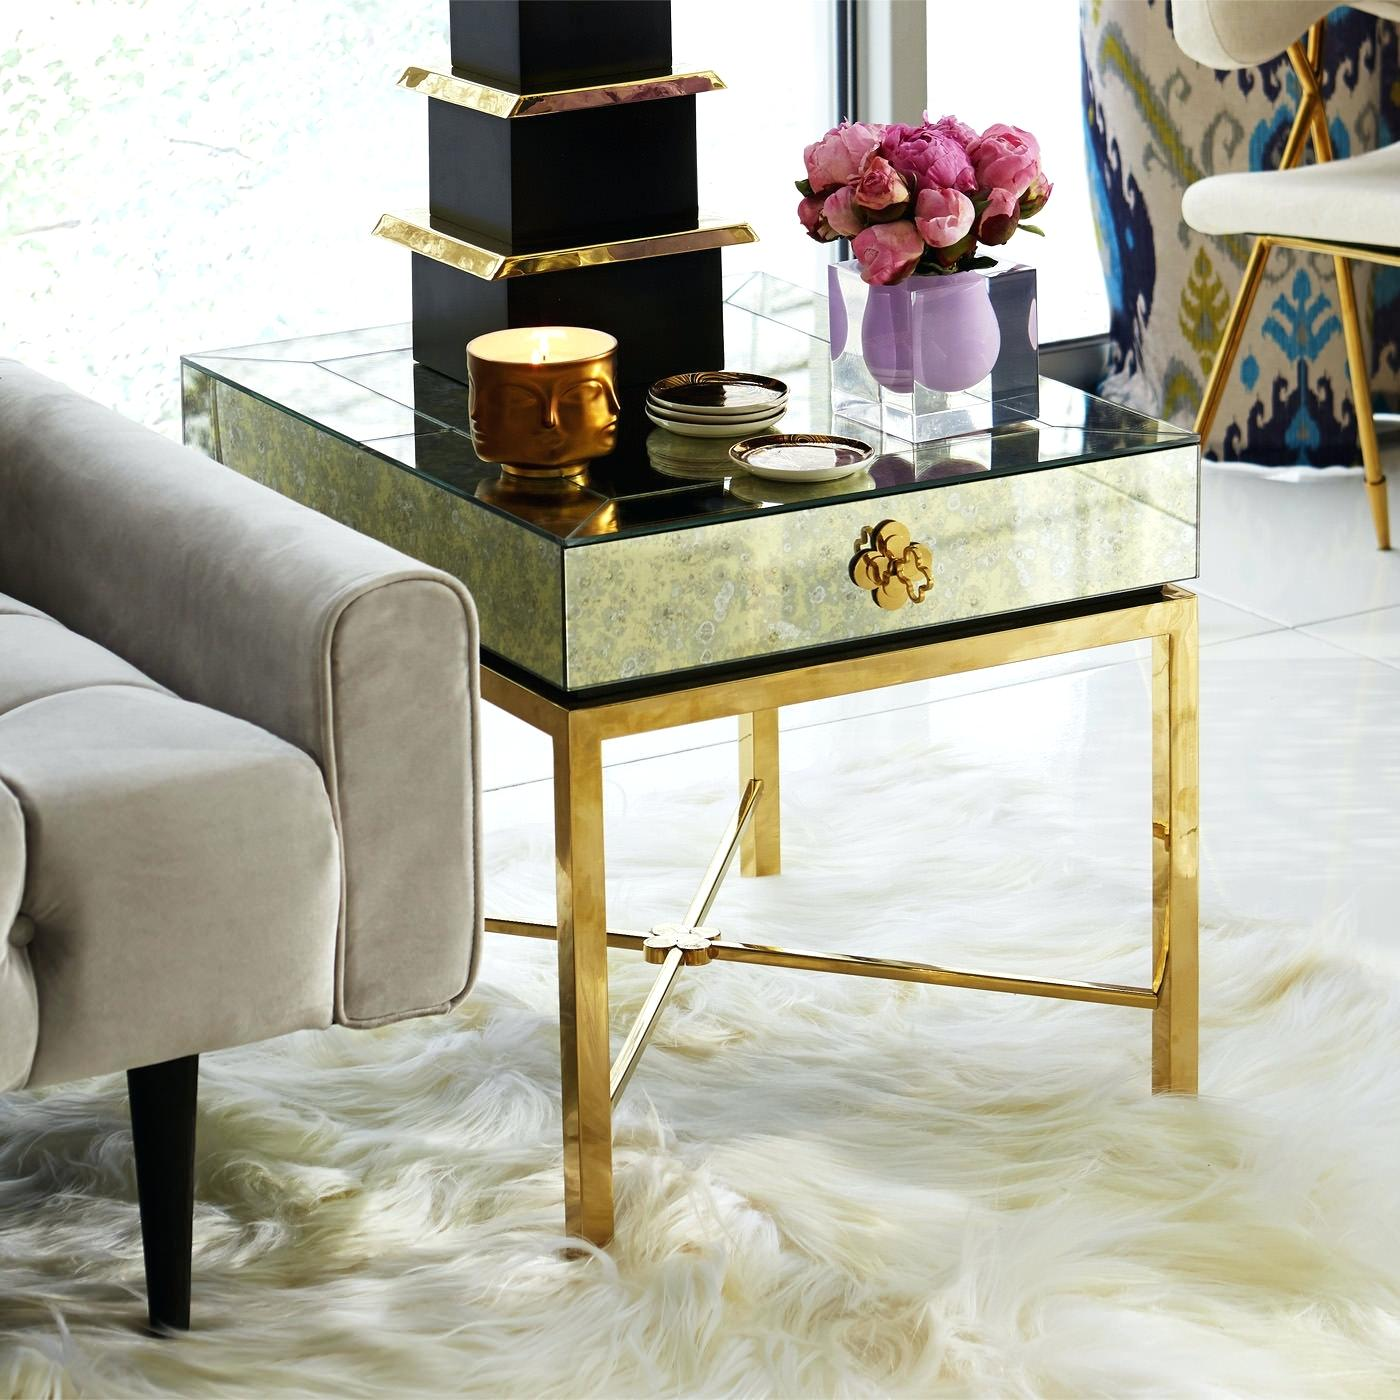 accent side table tables monarch specialties chrome alt metal and white cappuccino marble top bronze battery operated end lamps wedding reception decorations coupons glass coffee